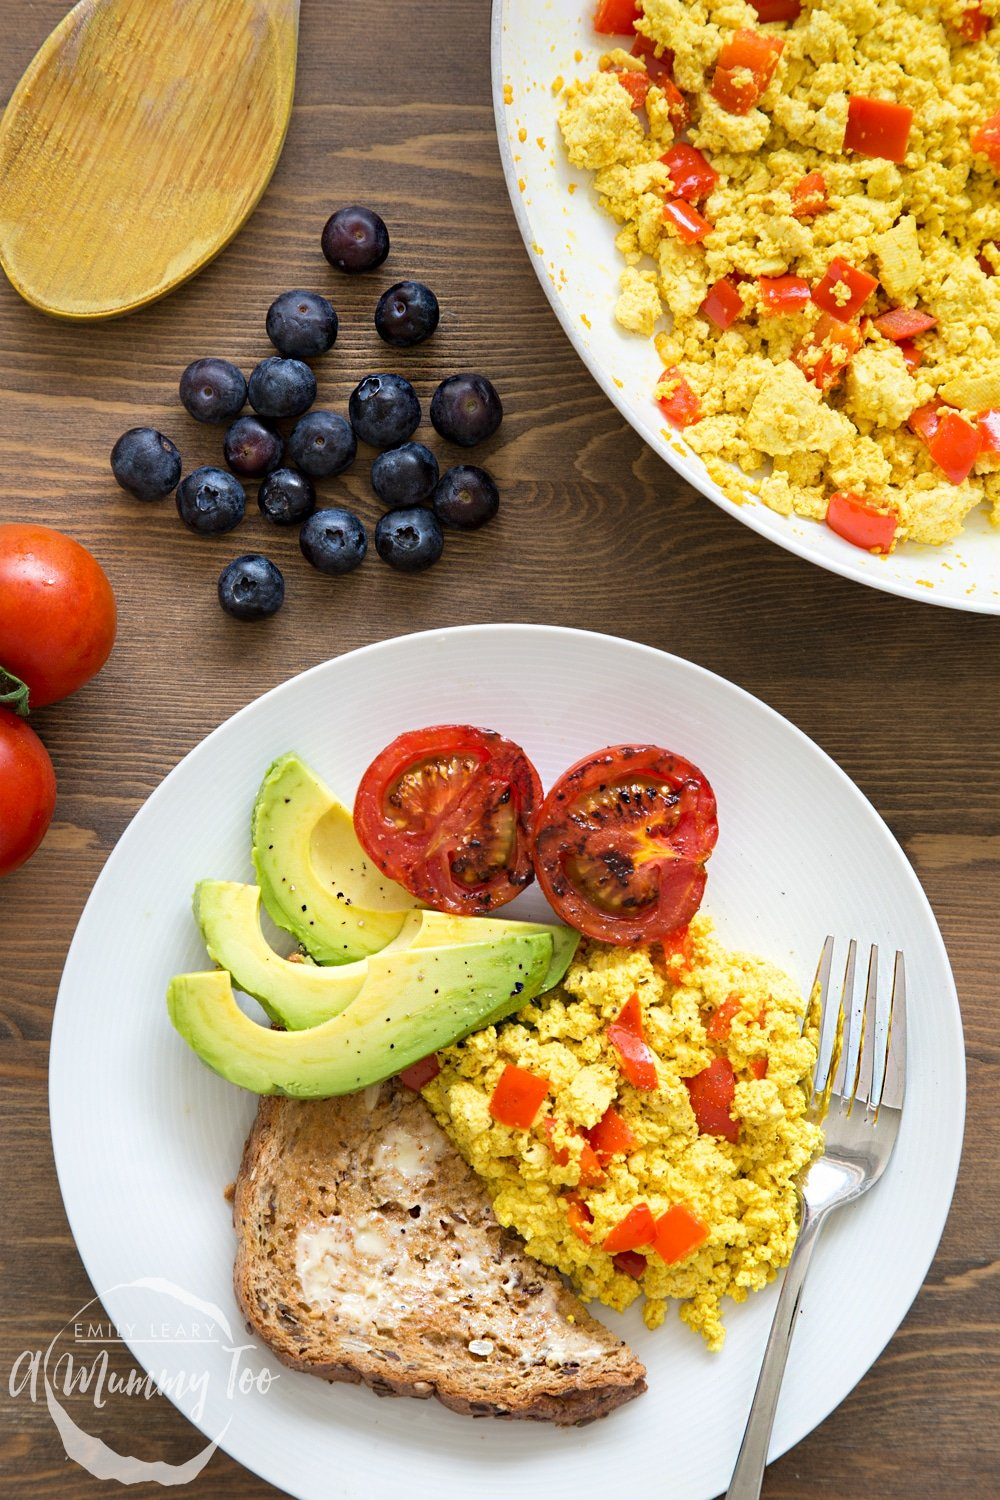 vegan scrambled eggs served with tomatoes, avocado and toast